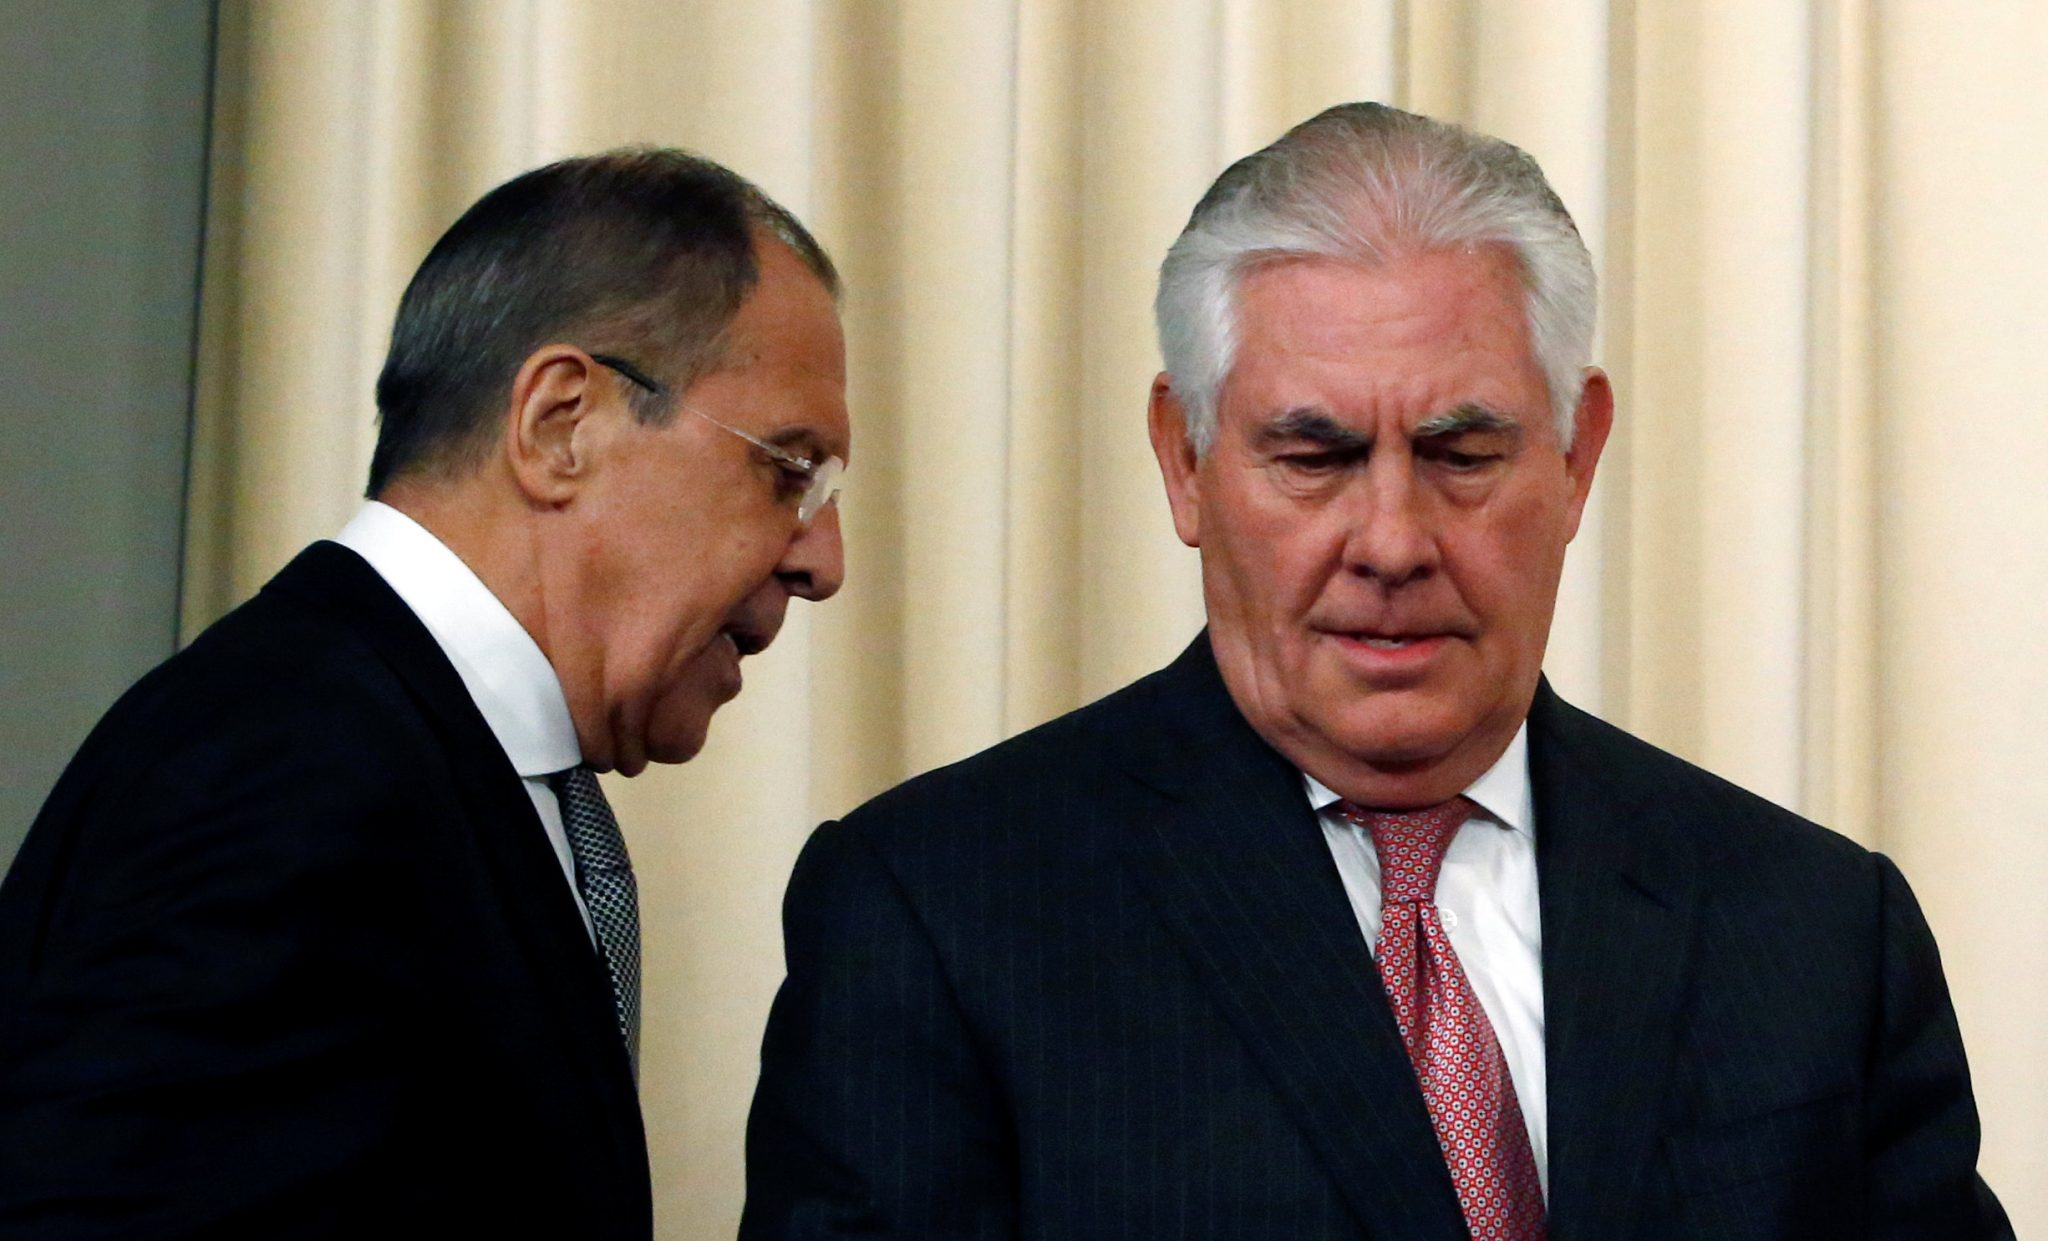 2017 04 12T175908Z 1846025868 RC1AC0AE7580 RTRMADP 3 USA RUSSIA TILLERSON